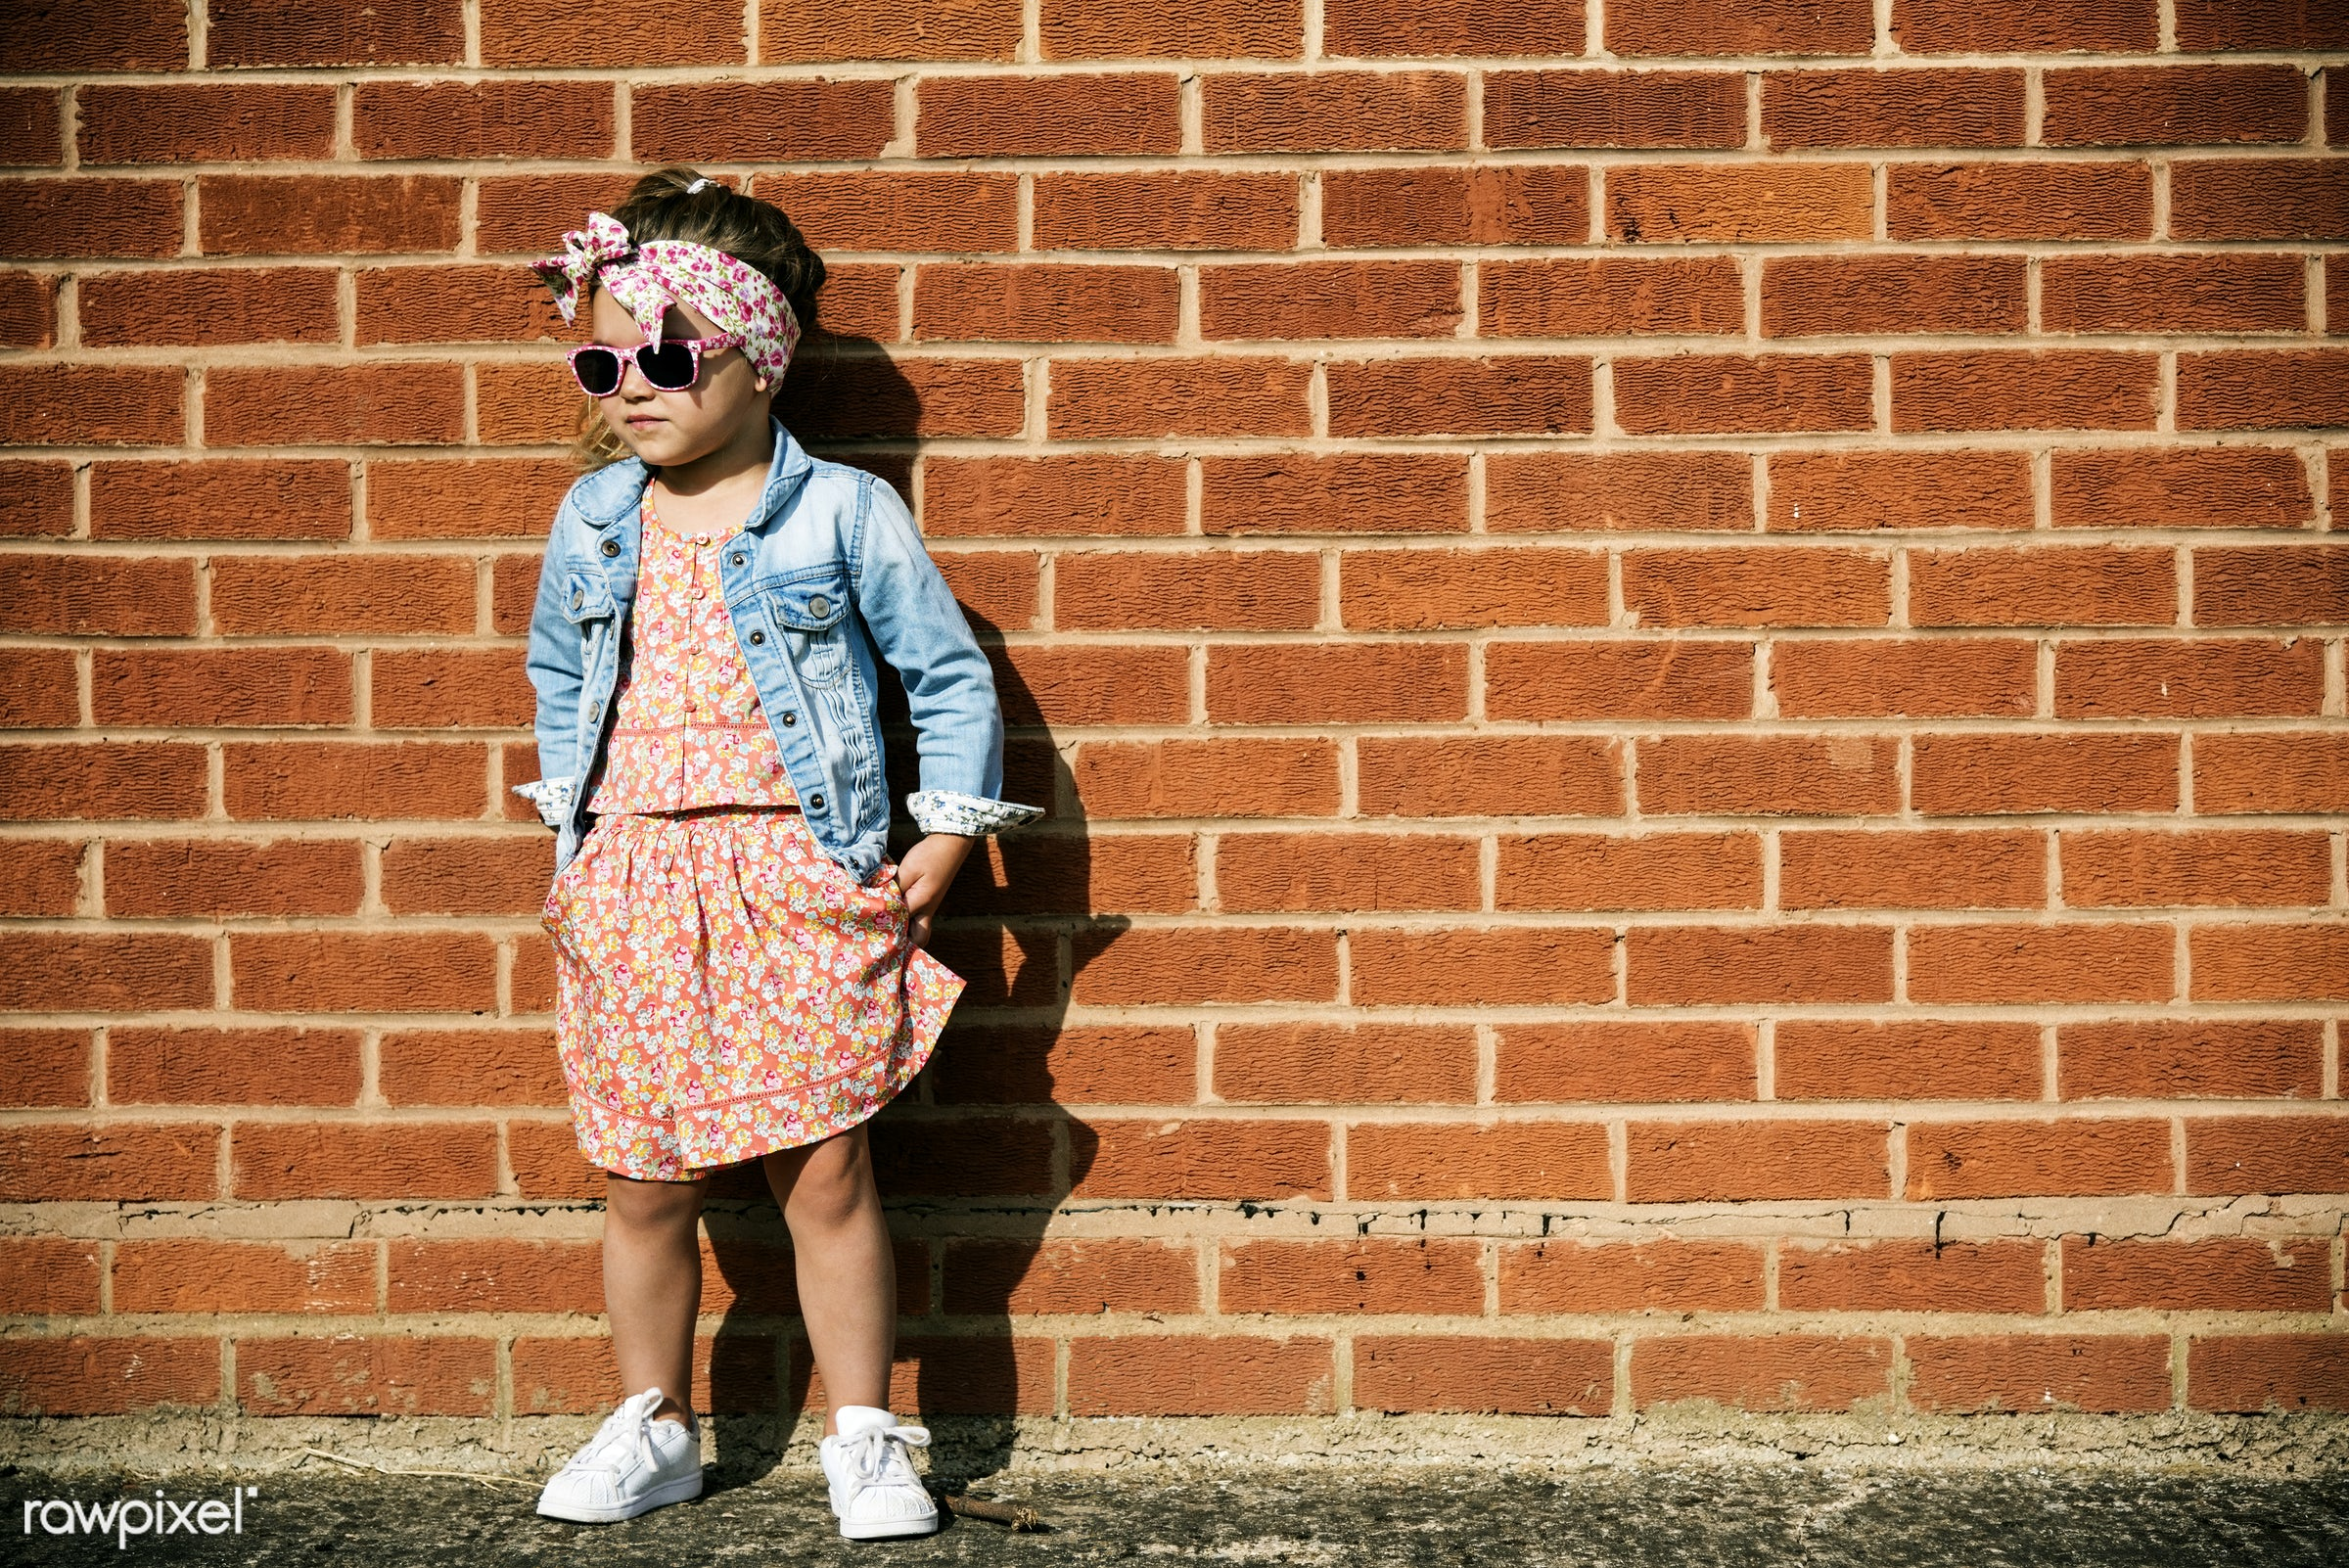 Adorable little girl fashionista street style - baby, fashion, adorable, beautiful, beauty, cape, charming, cheerful, child...